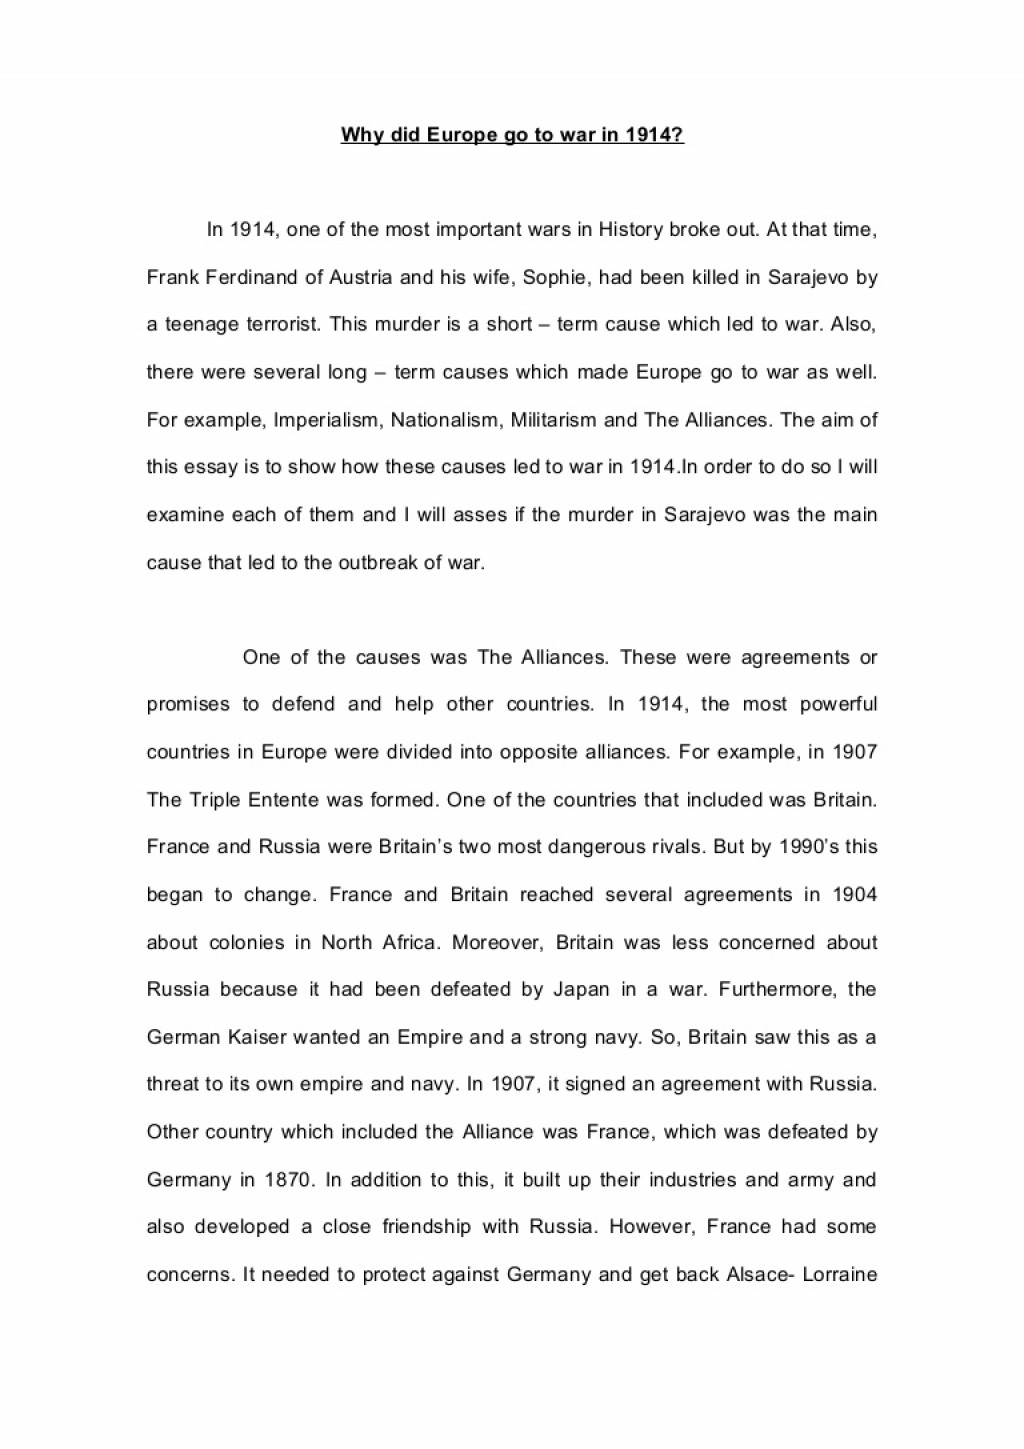 006 Essay Example Whydideuropegotowarin1914essay Phpapp01 Thumbnail Bullying In Stunning Schools School Spm Free Preventing Large